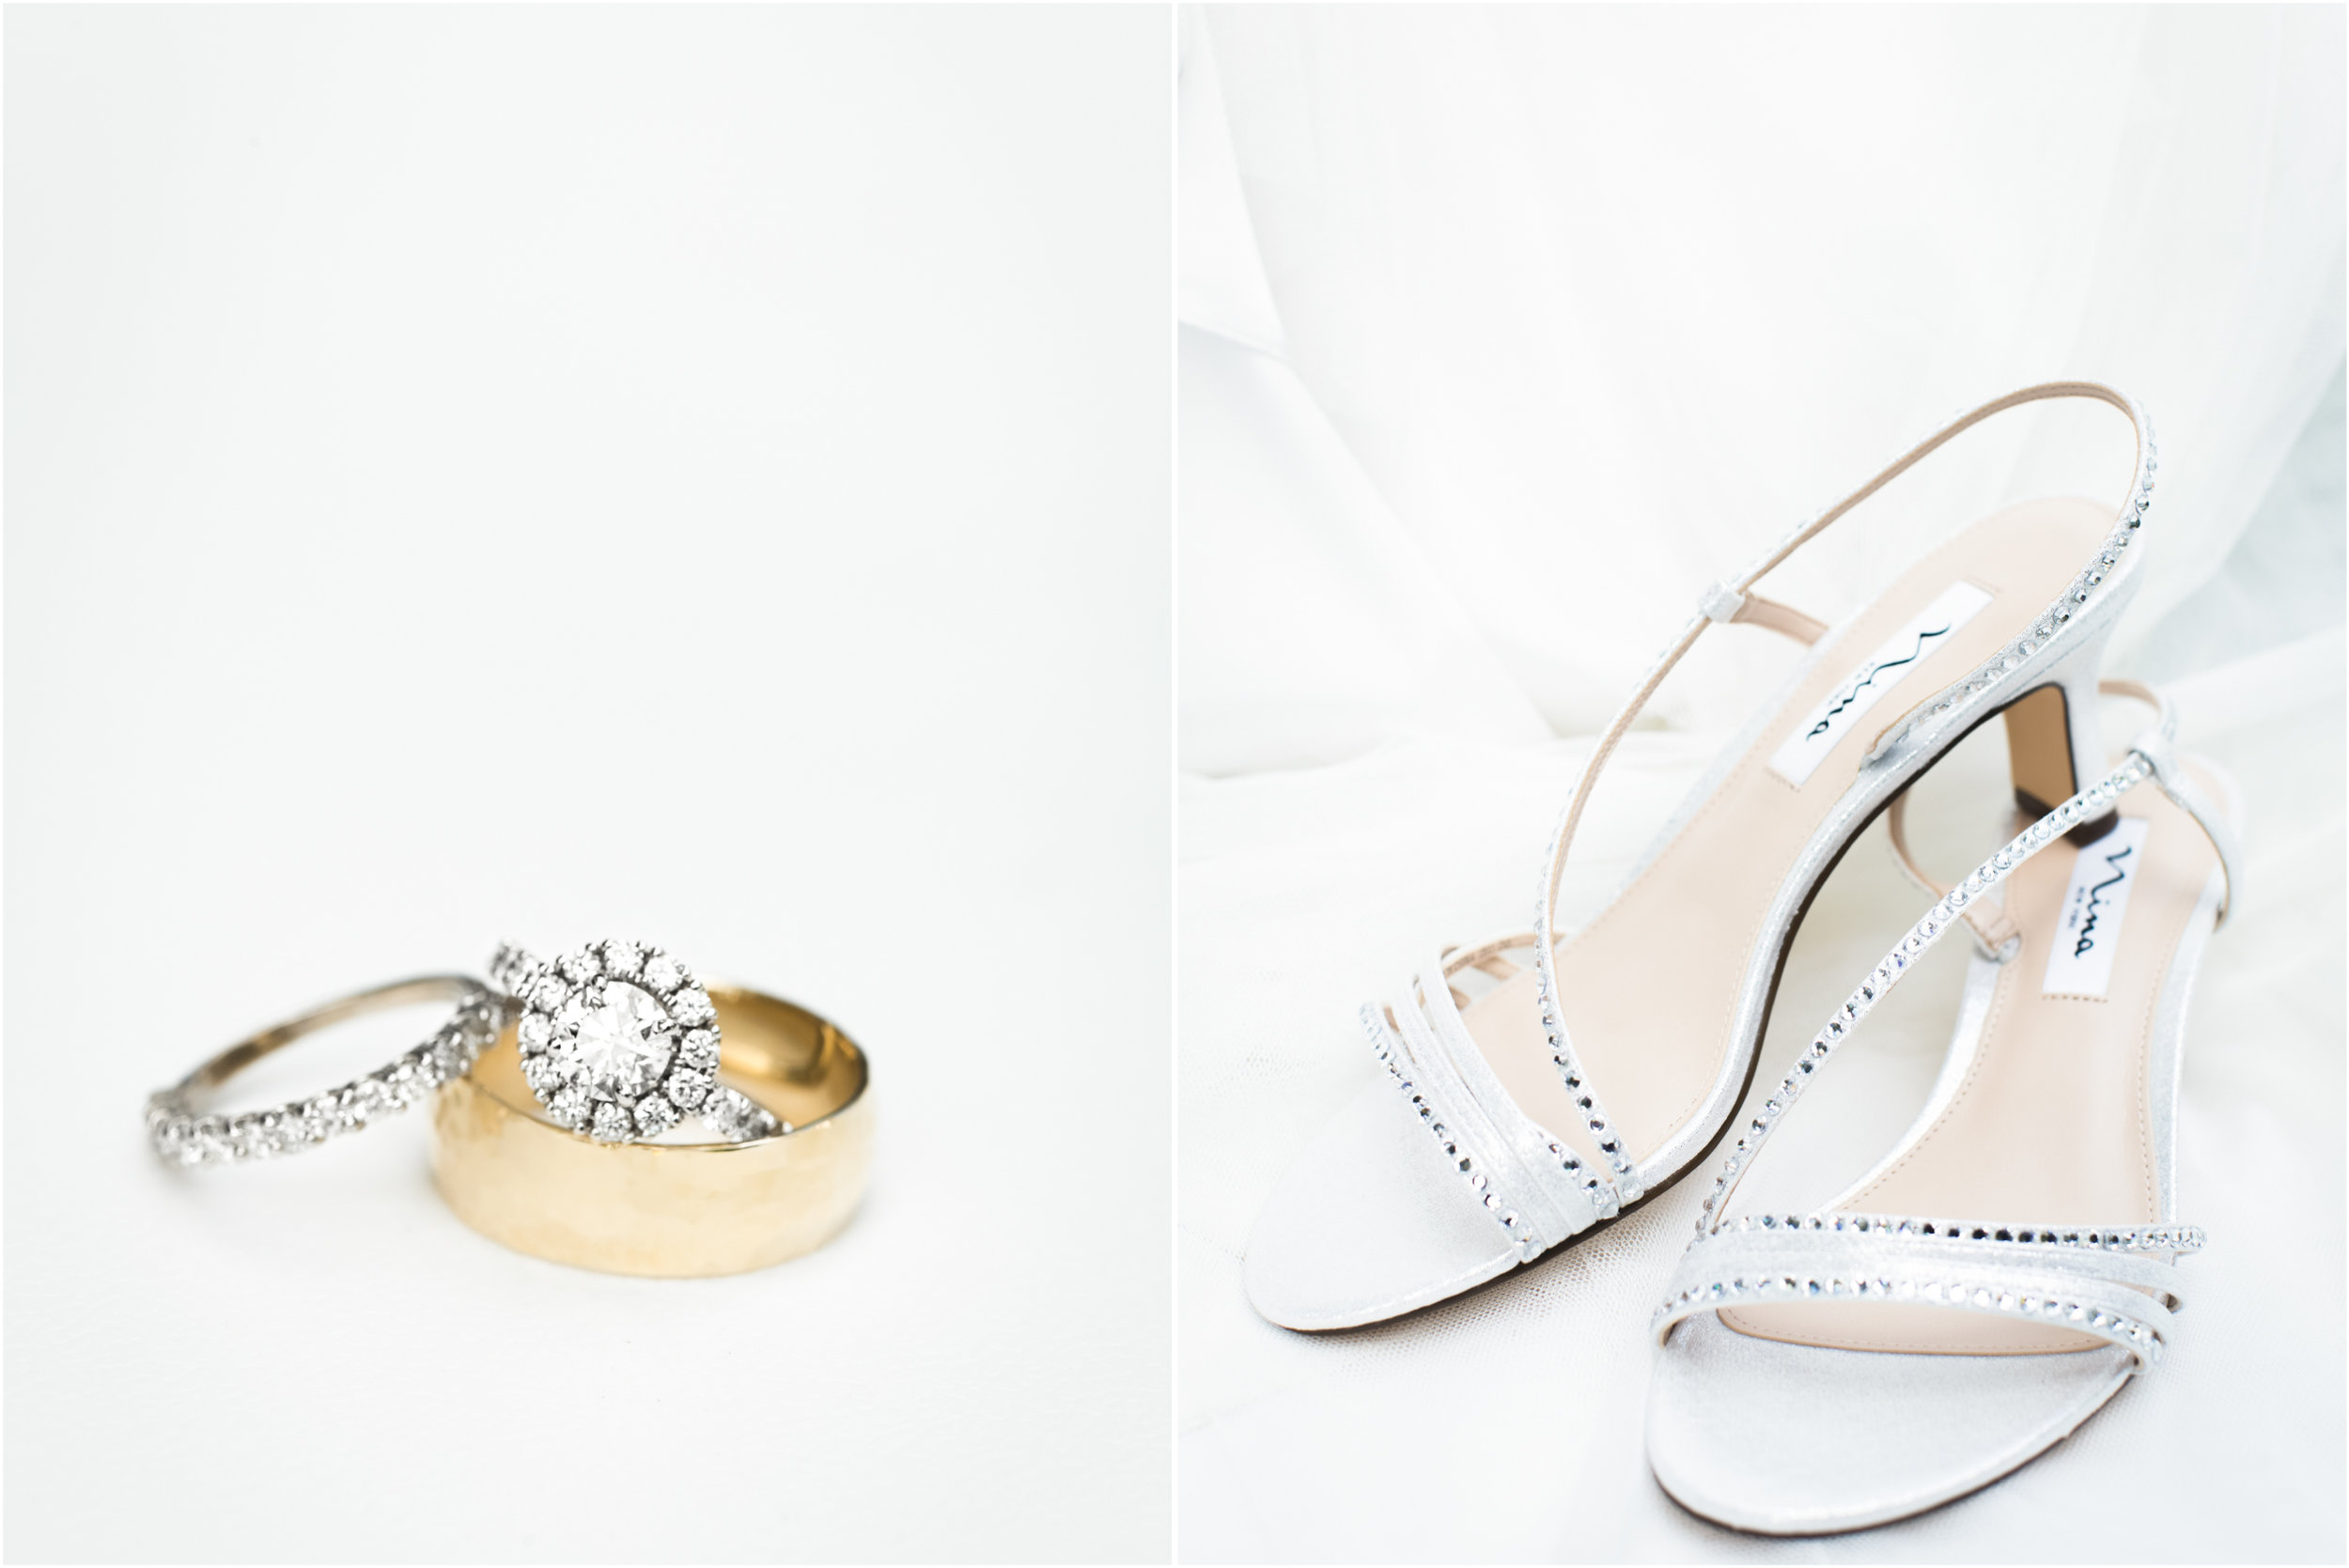 Copy of Wedding Rings and Shoes